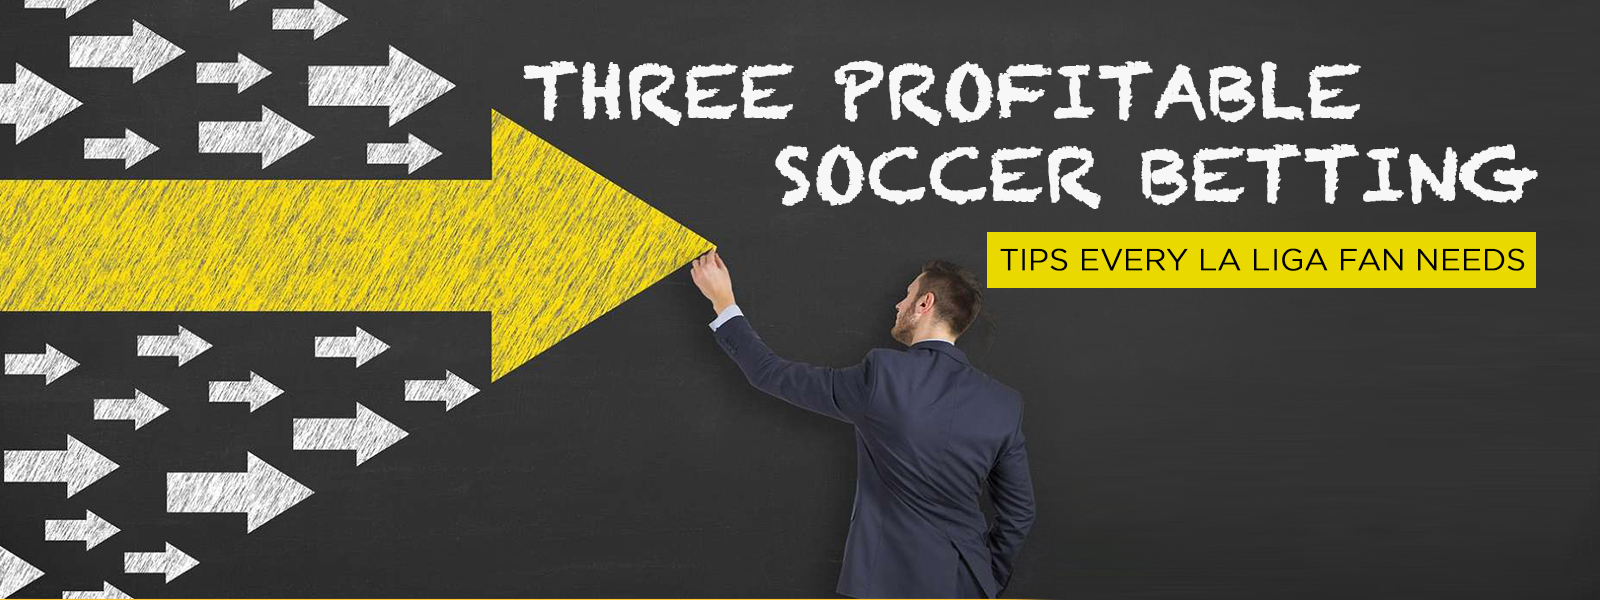 Three Profitable Soccer Betting Tips Every La Liga Fan Needs